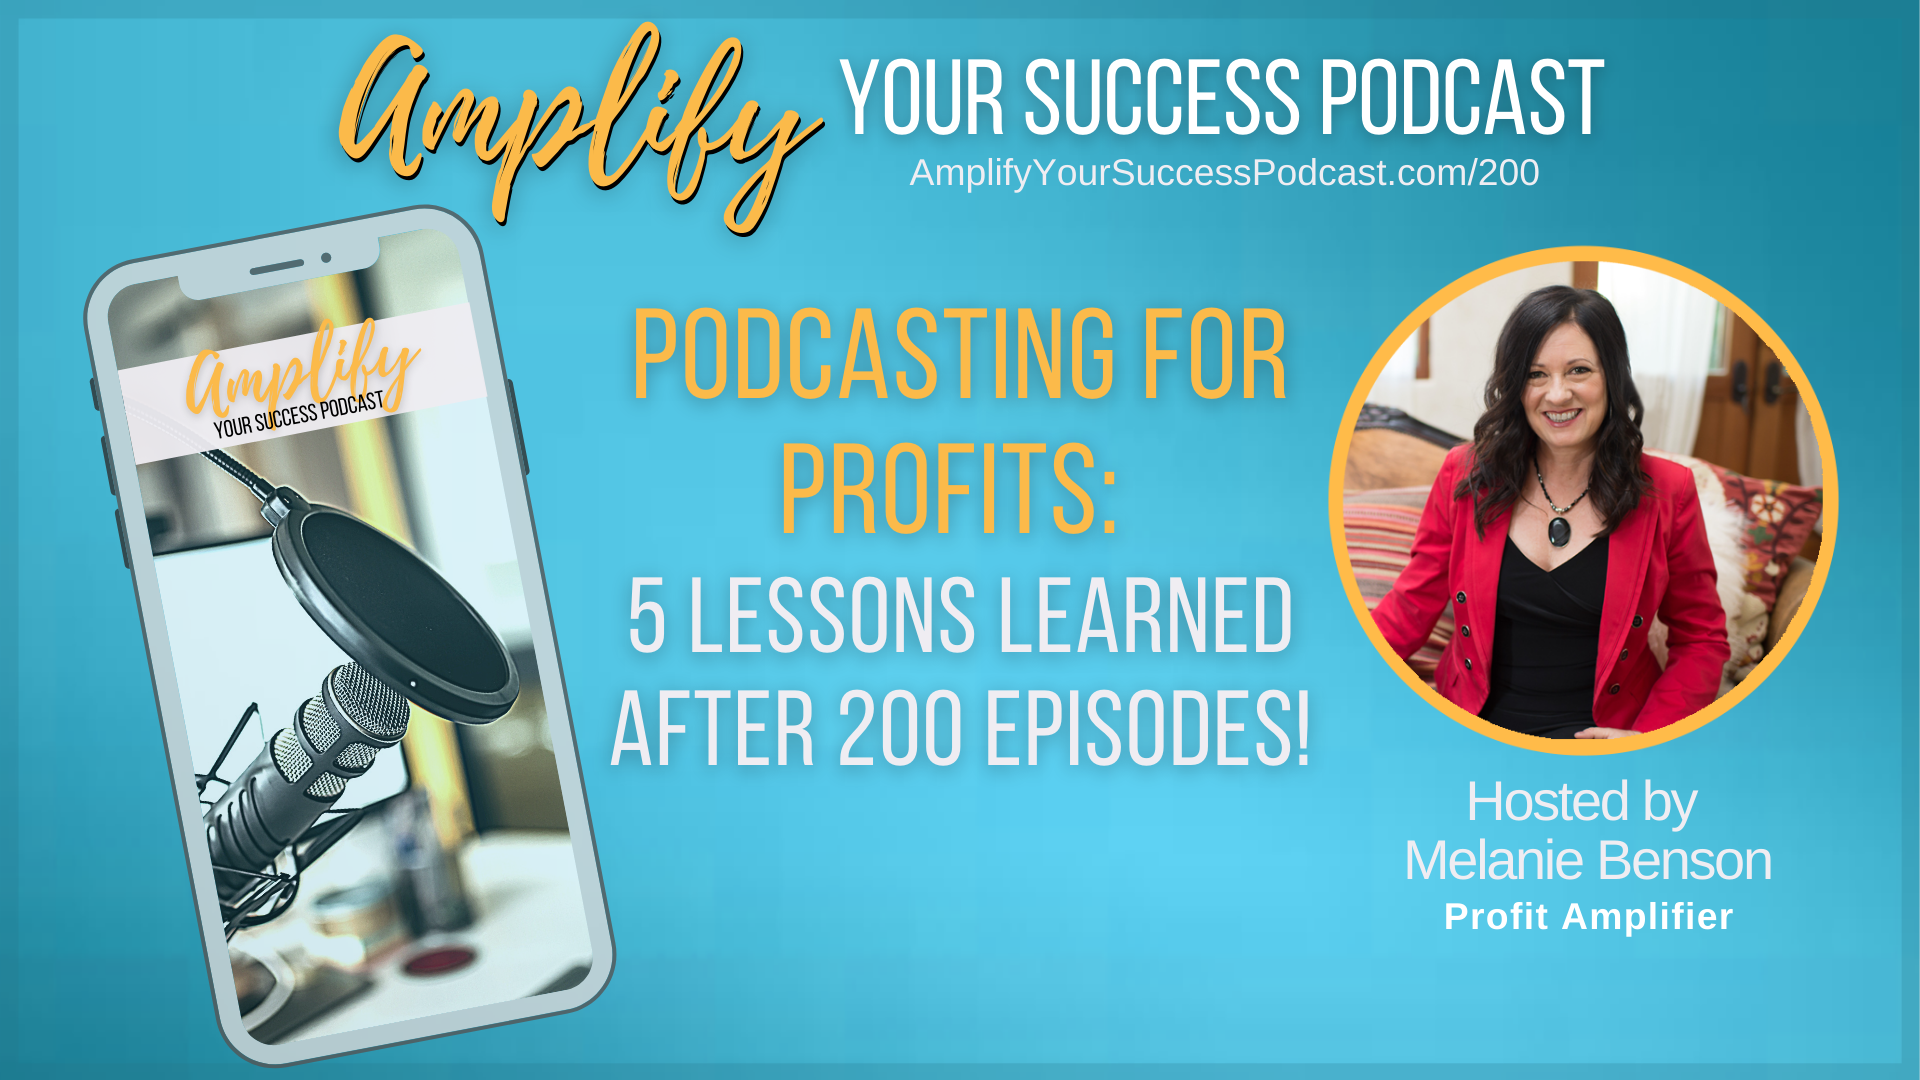 Podcasting for Profits: 5 Lessons Learned After 200 Episodes